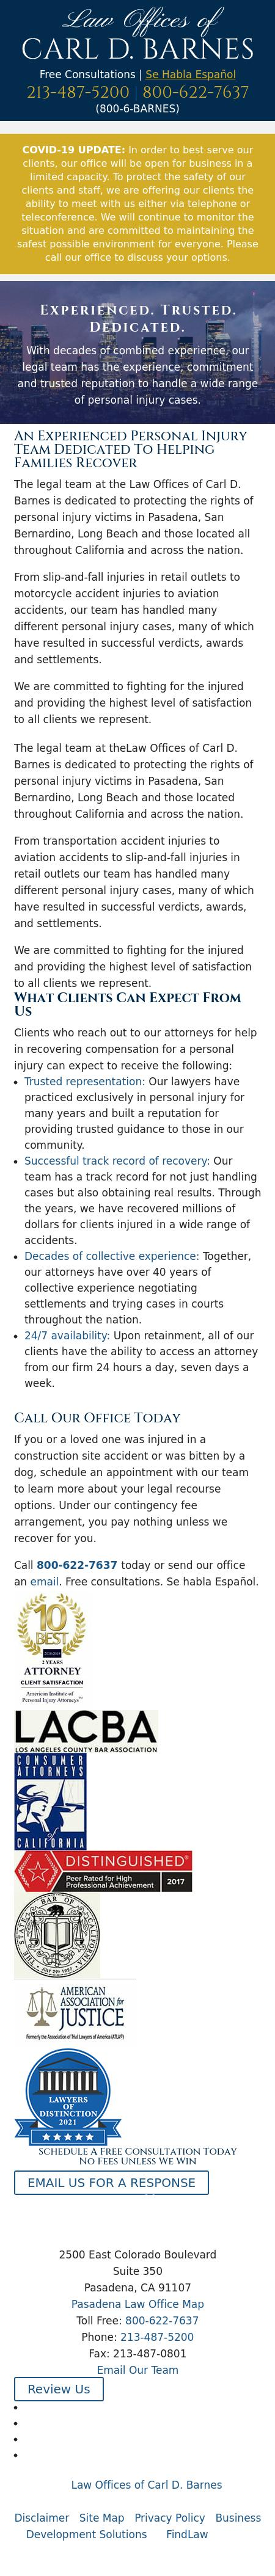 Barnes Carl D Law Offices Of | Los Angeles CA Law | LawyerLand